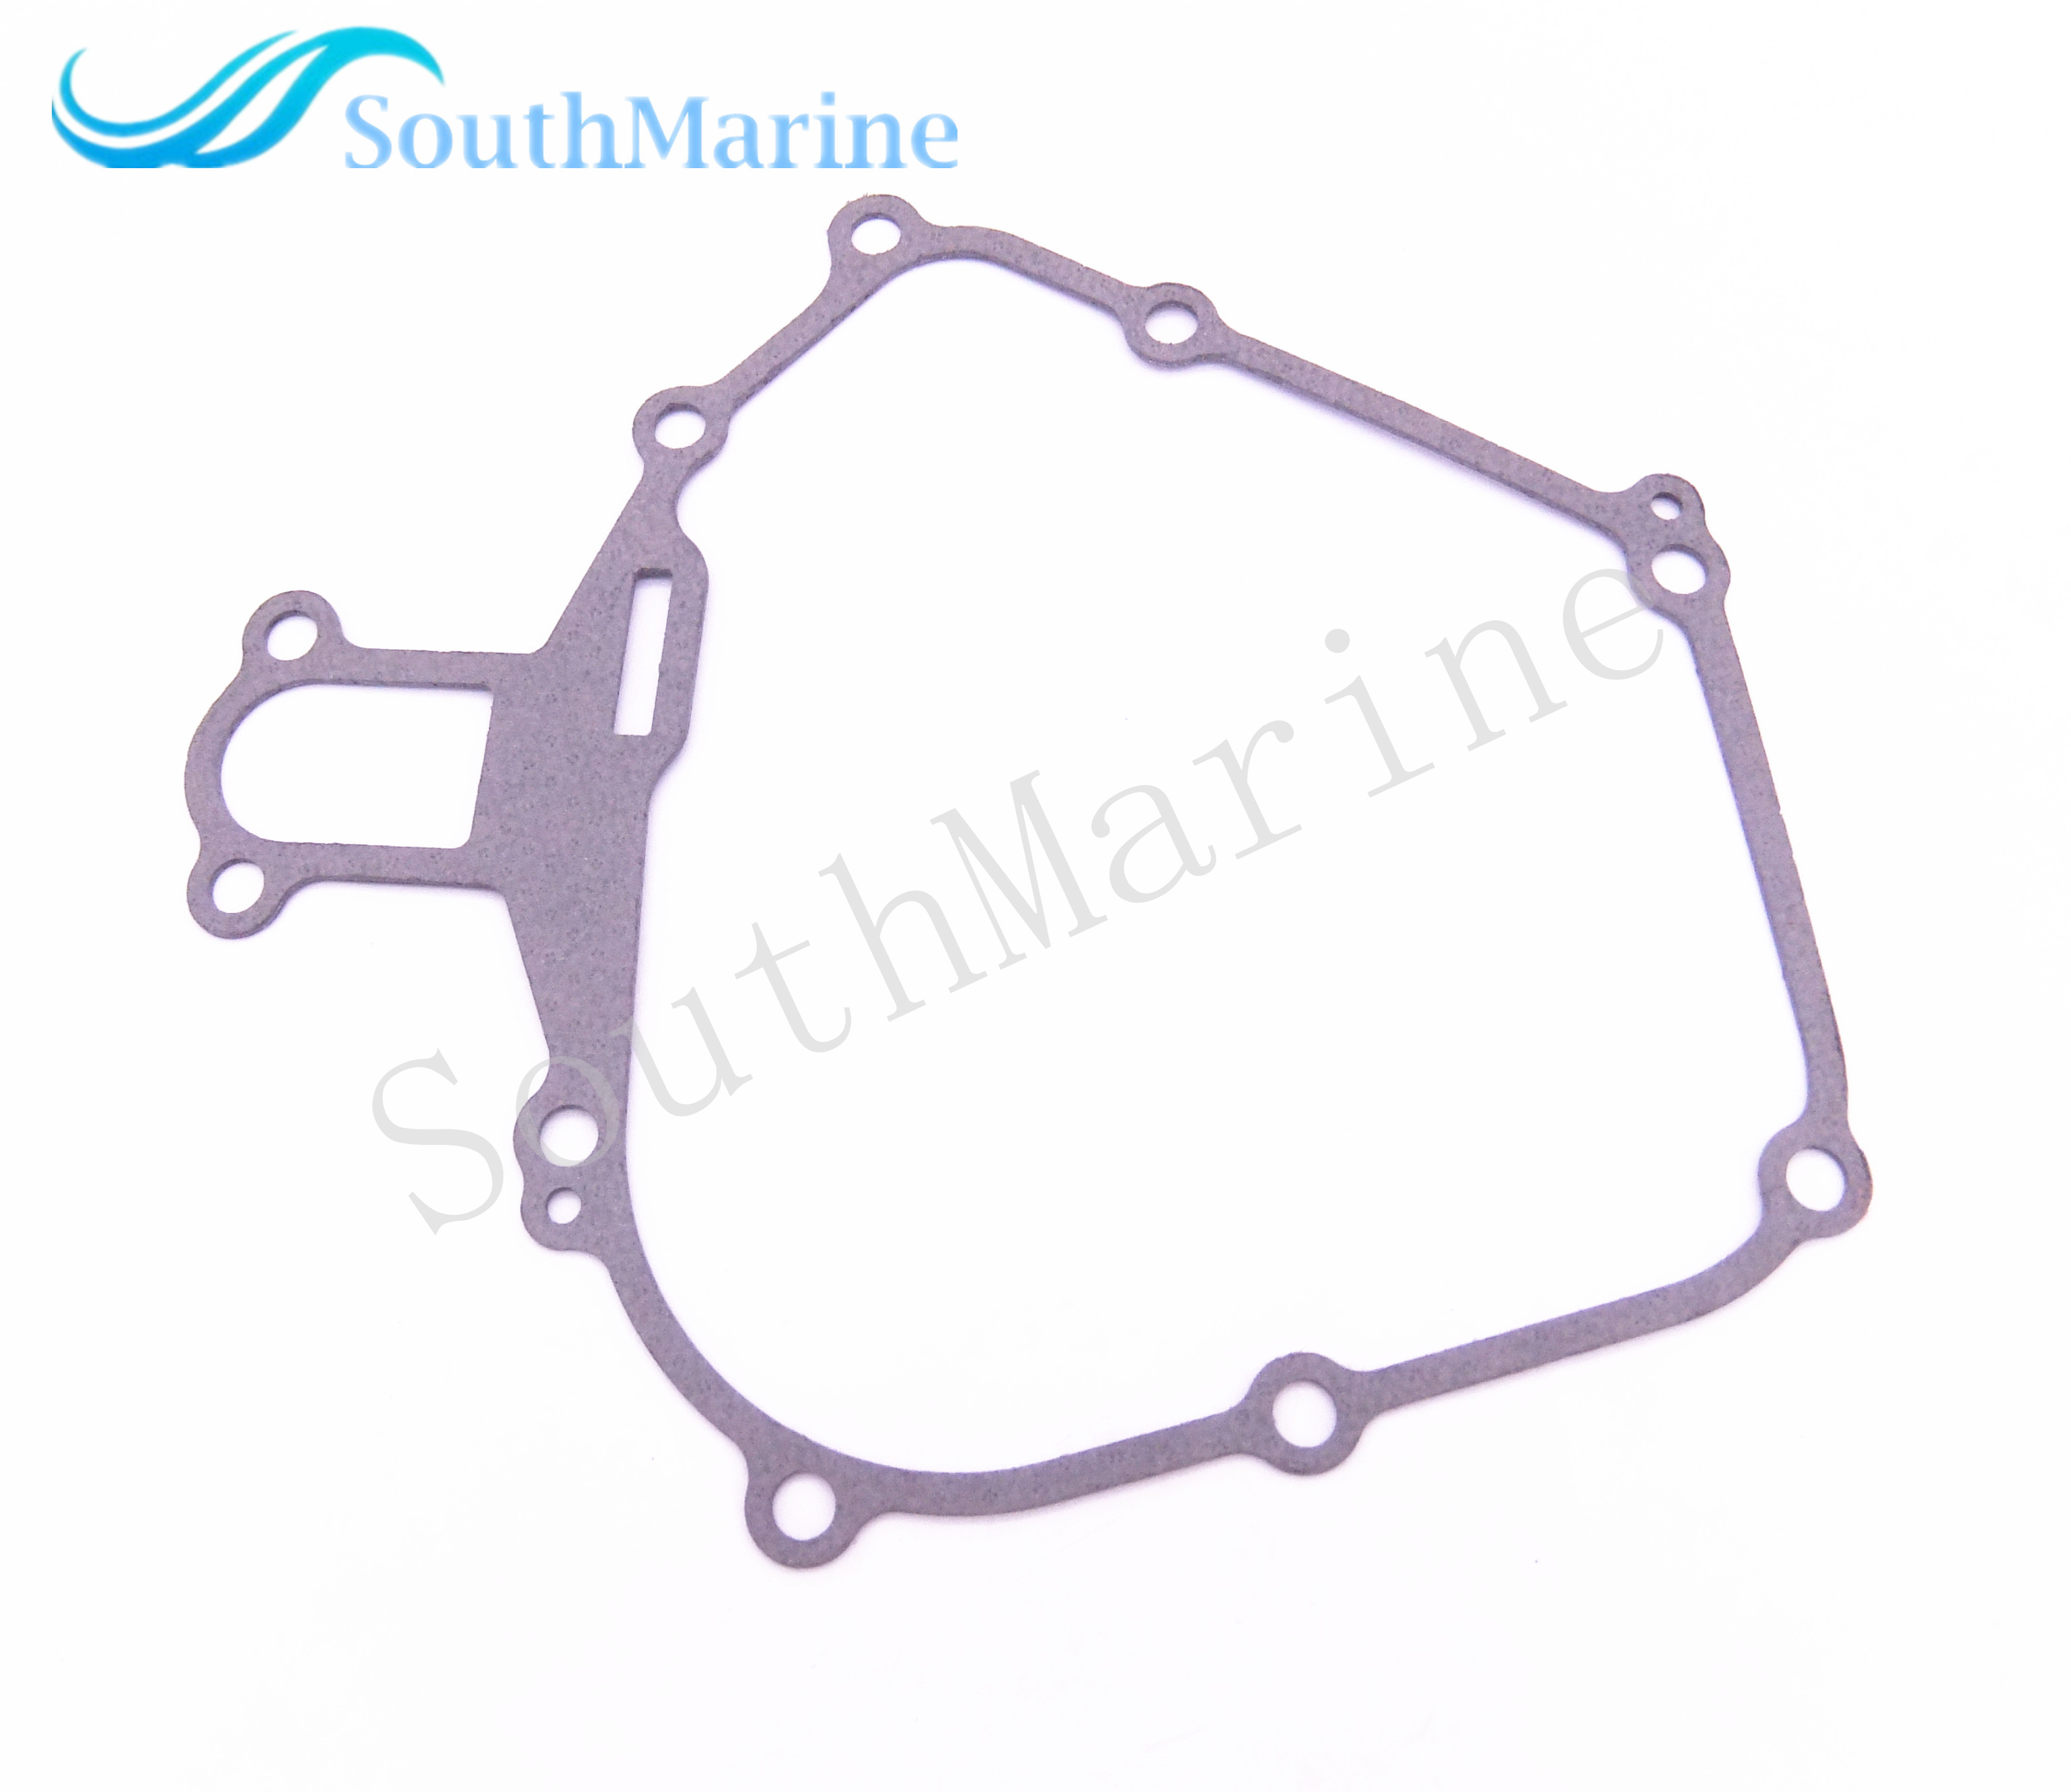 69M-11351-A0 Outboard Engine Cylinder Gasket For Yamaha 4-Stroke F2.5 Boat Motor Free Shipping